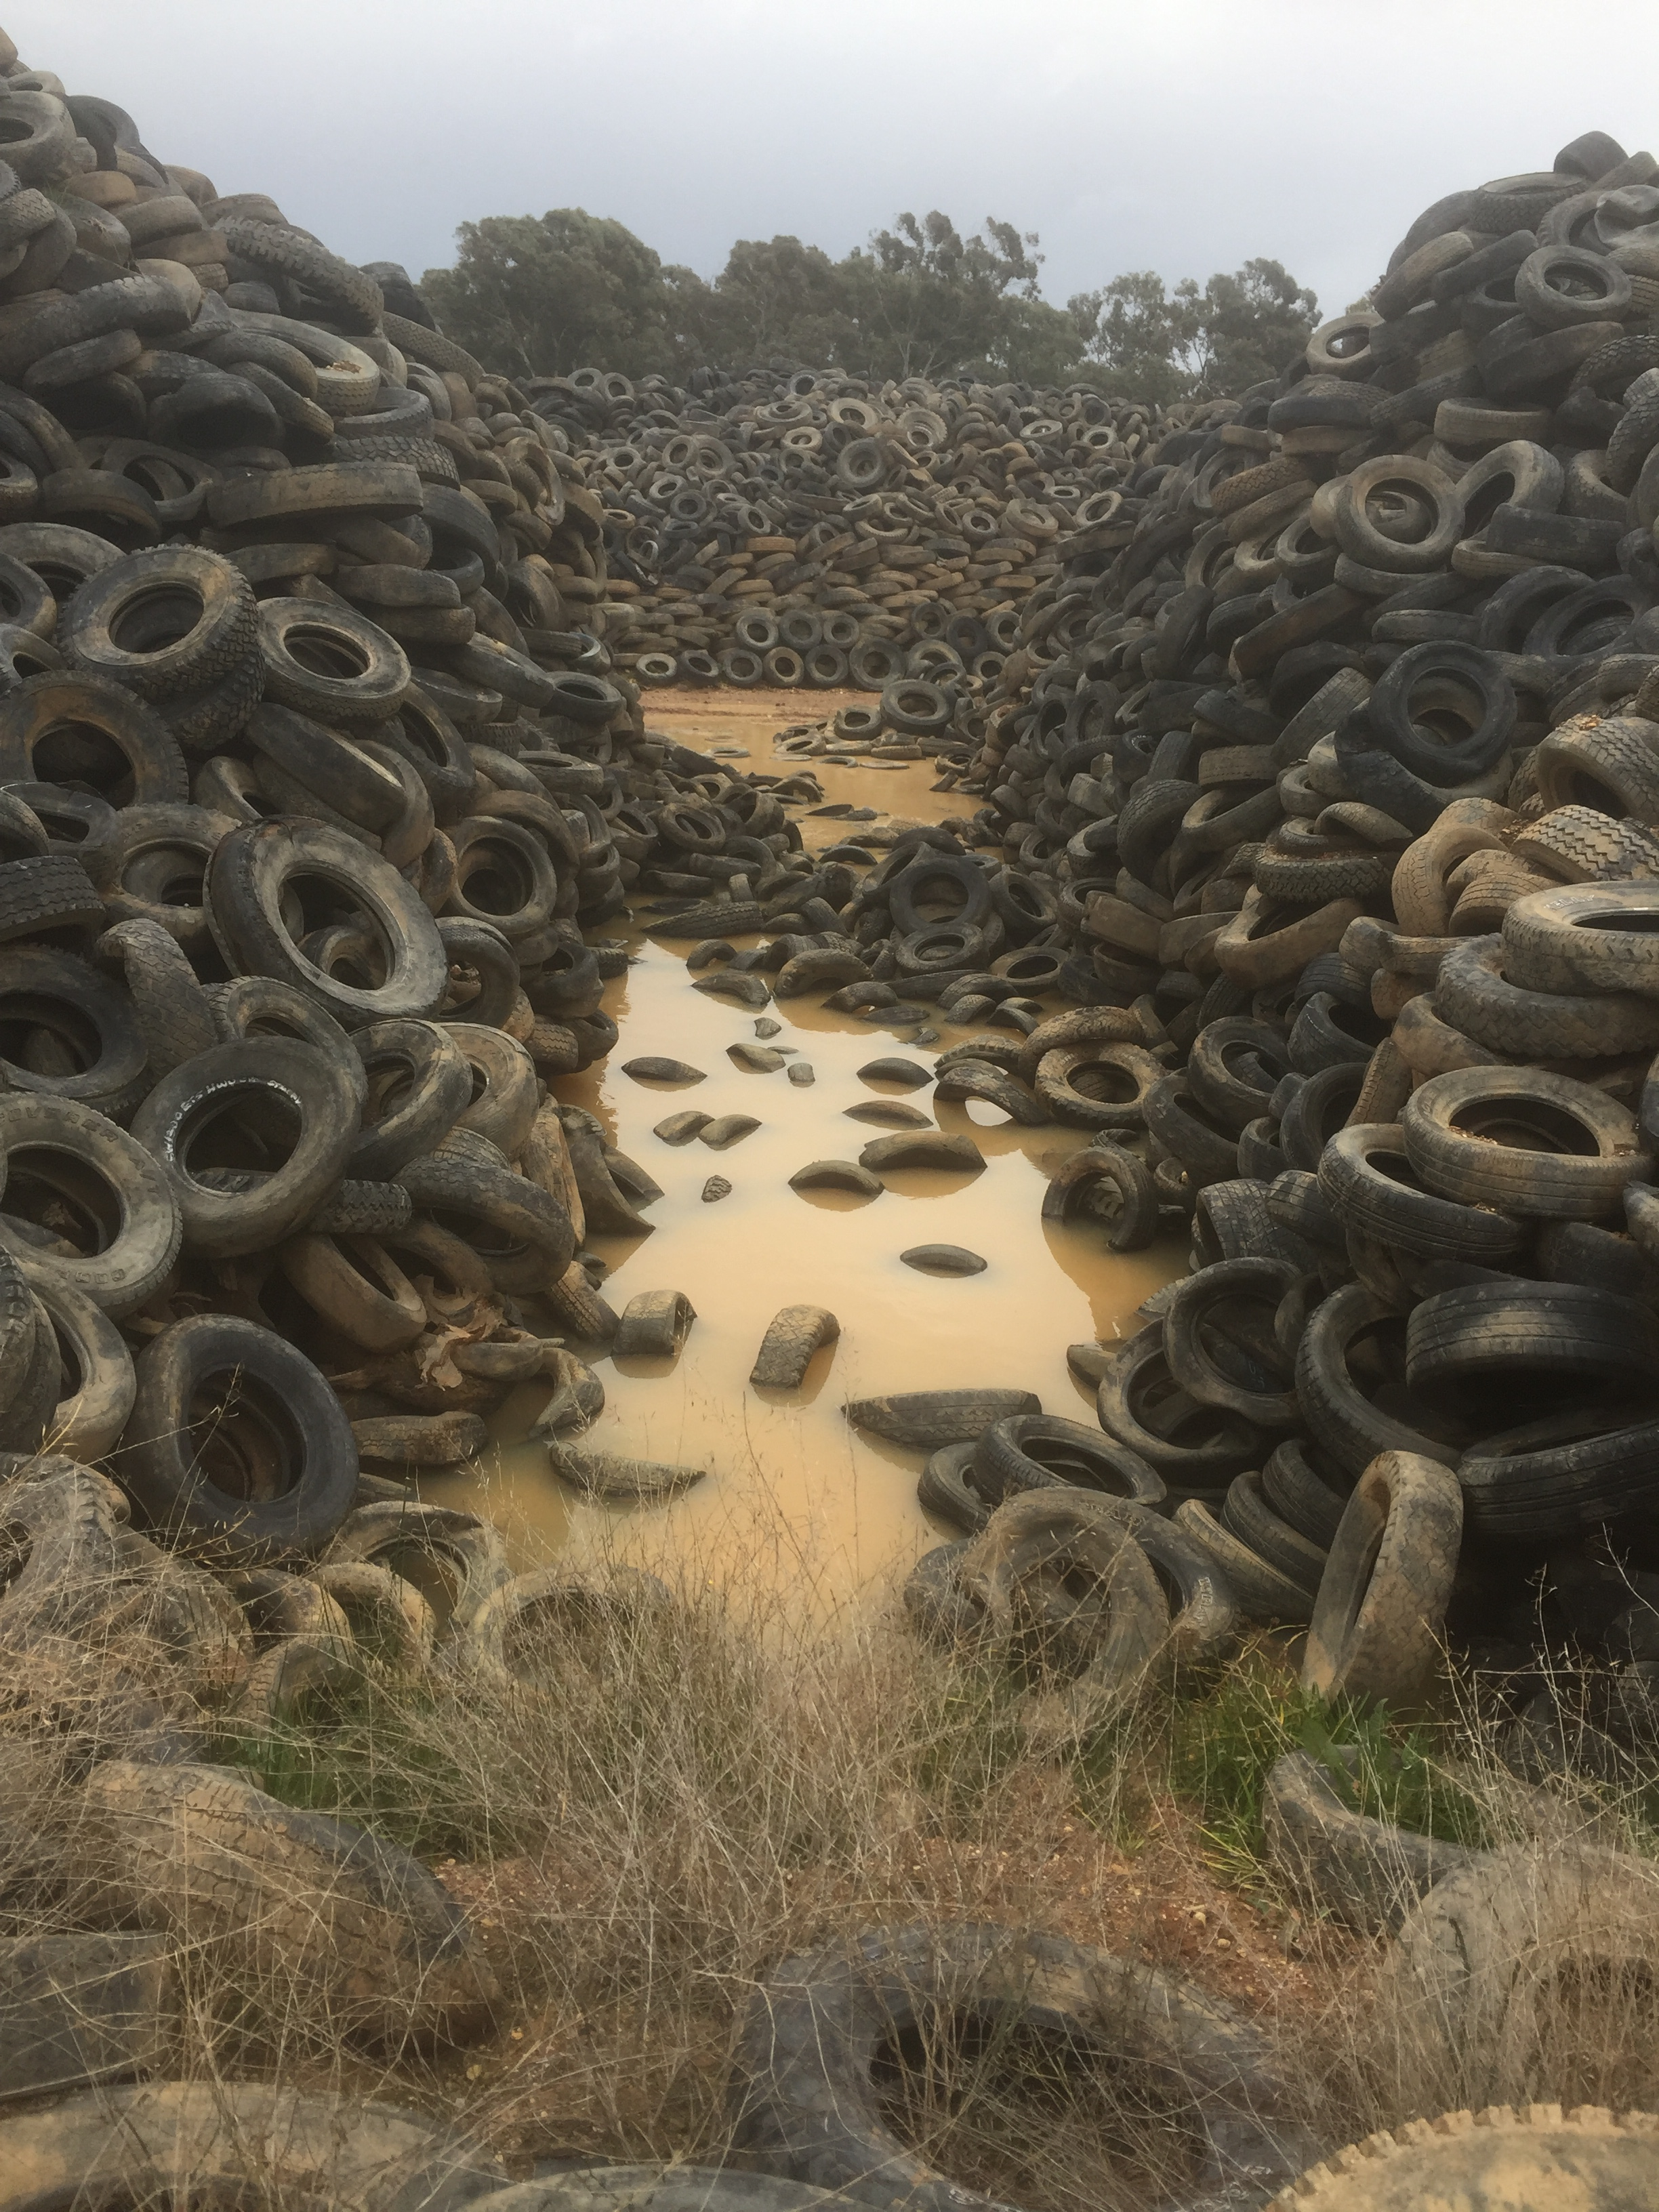 Tyrecycle's call to end stockpiling